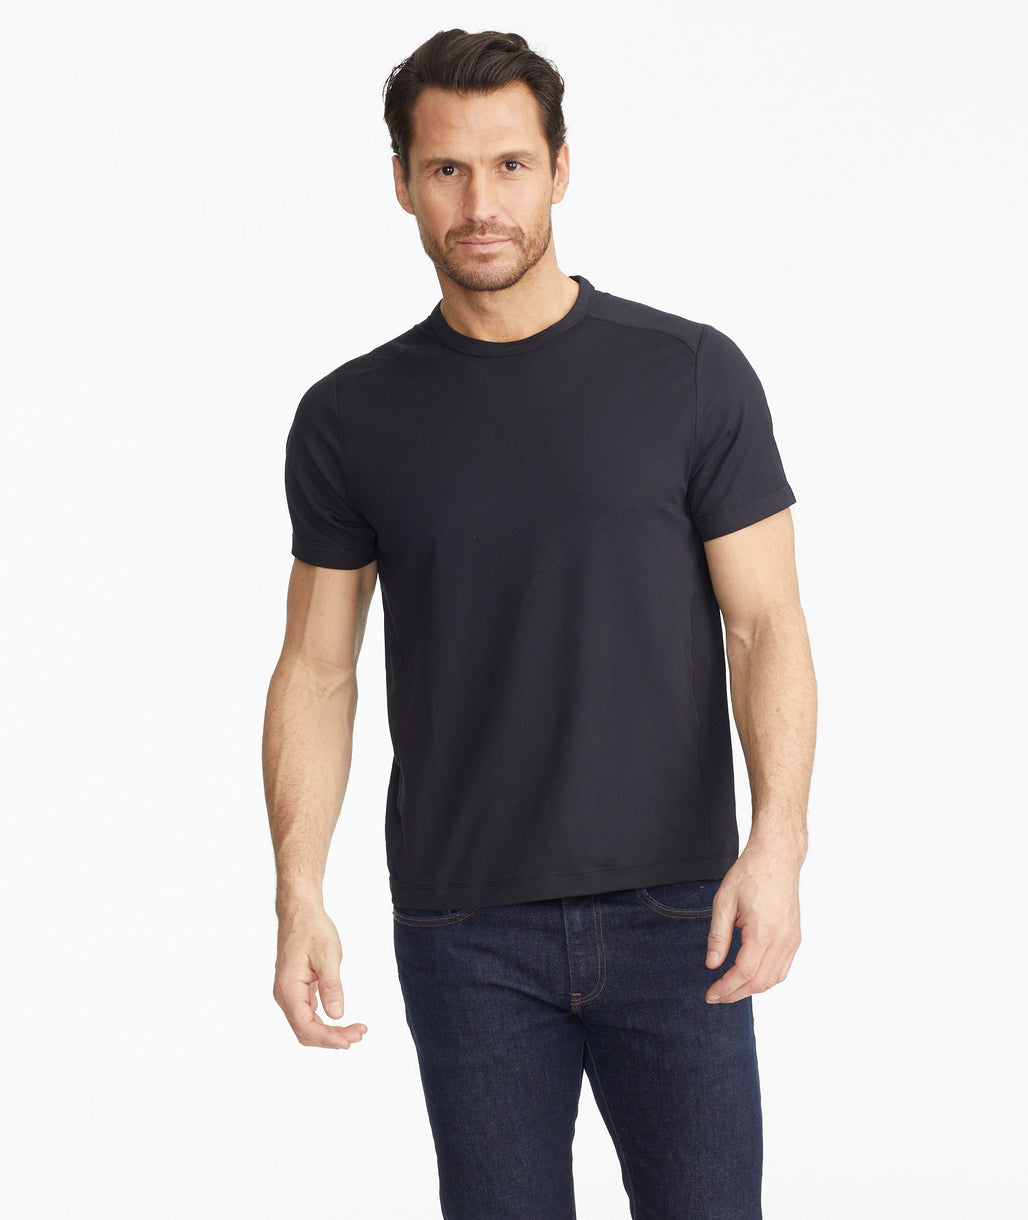 Model wearing a Black Performance Tee